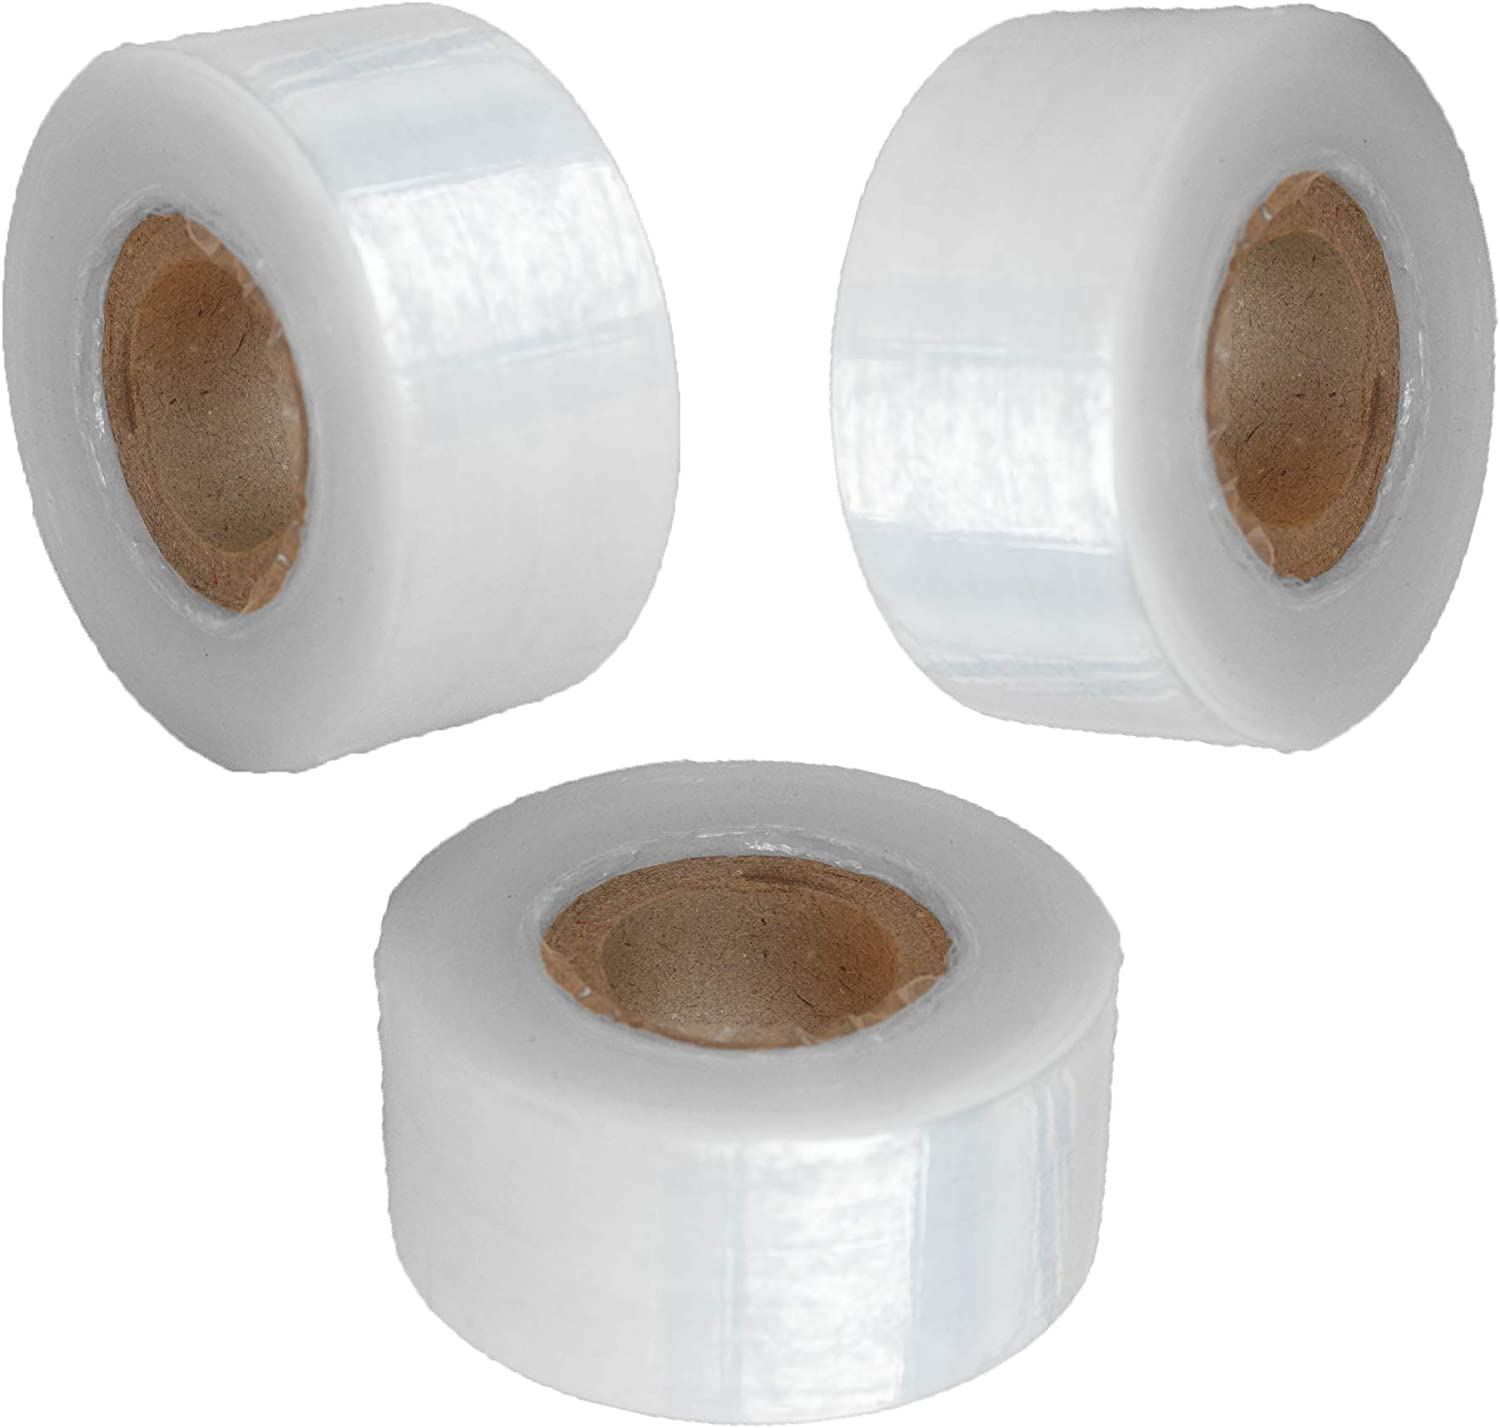 Suplklz Self-Adhesive Garden Grafting Tape Plant Repair Tapes Moisture Barrier Stretchable Clear Film for Fruit, Floral, Tree and Plants Ploy Budding Tape Graft Tool Nursery Tape